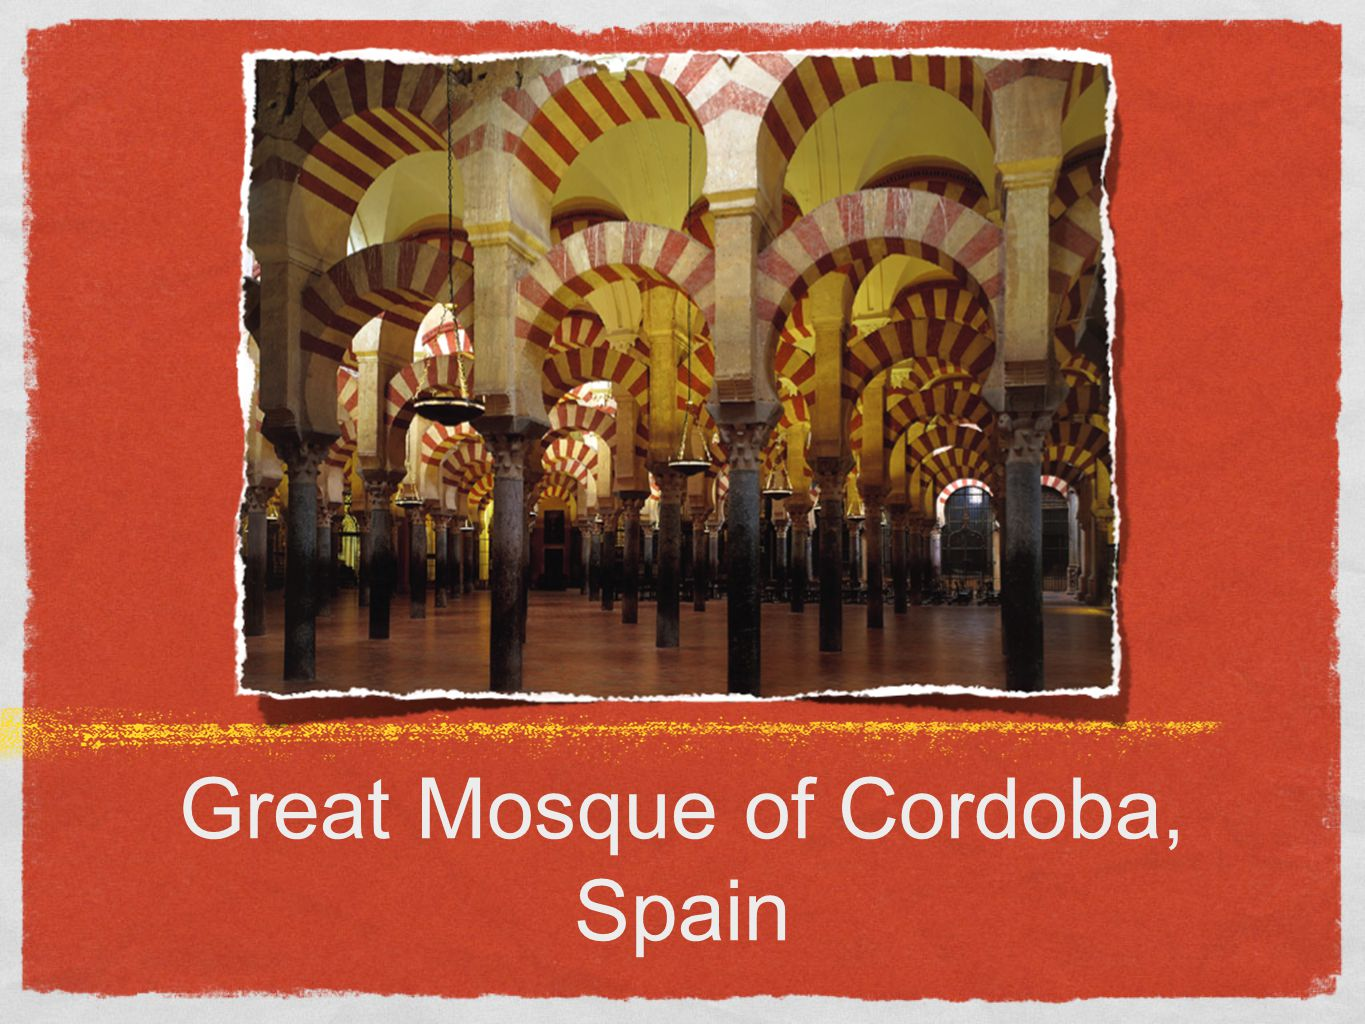 Cordoba Hypostyle Hall had 36 piers and 514 columns topped by double-tiered arches.